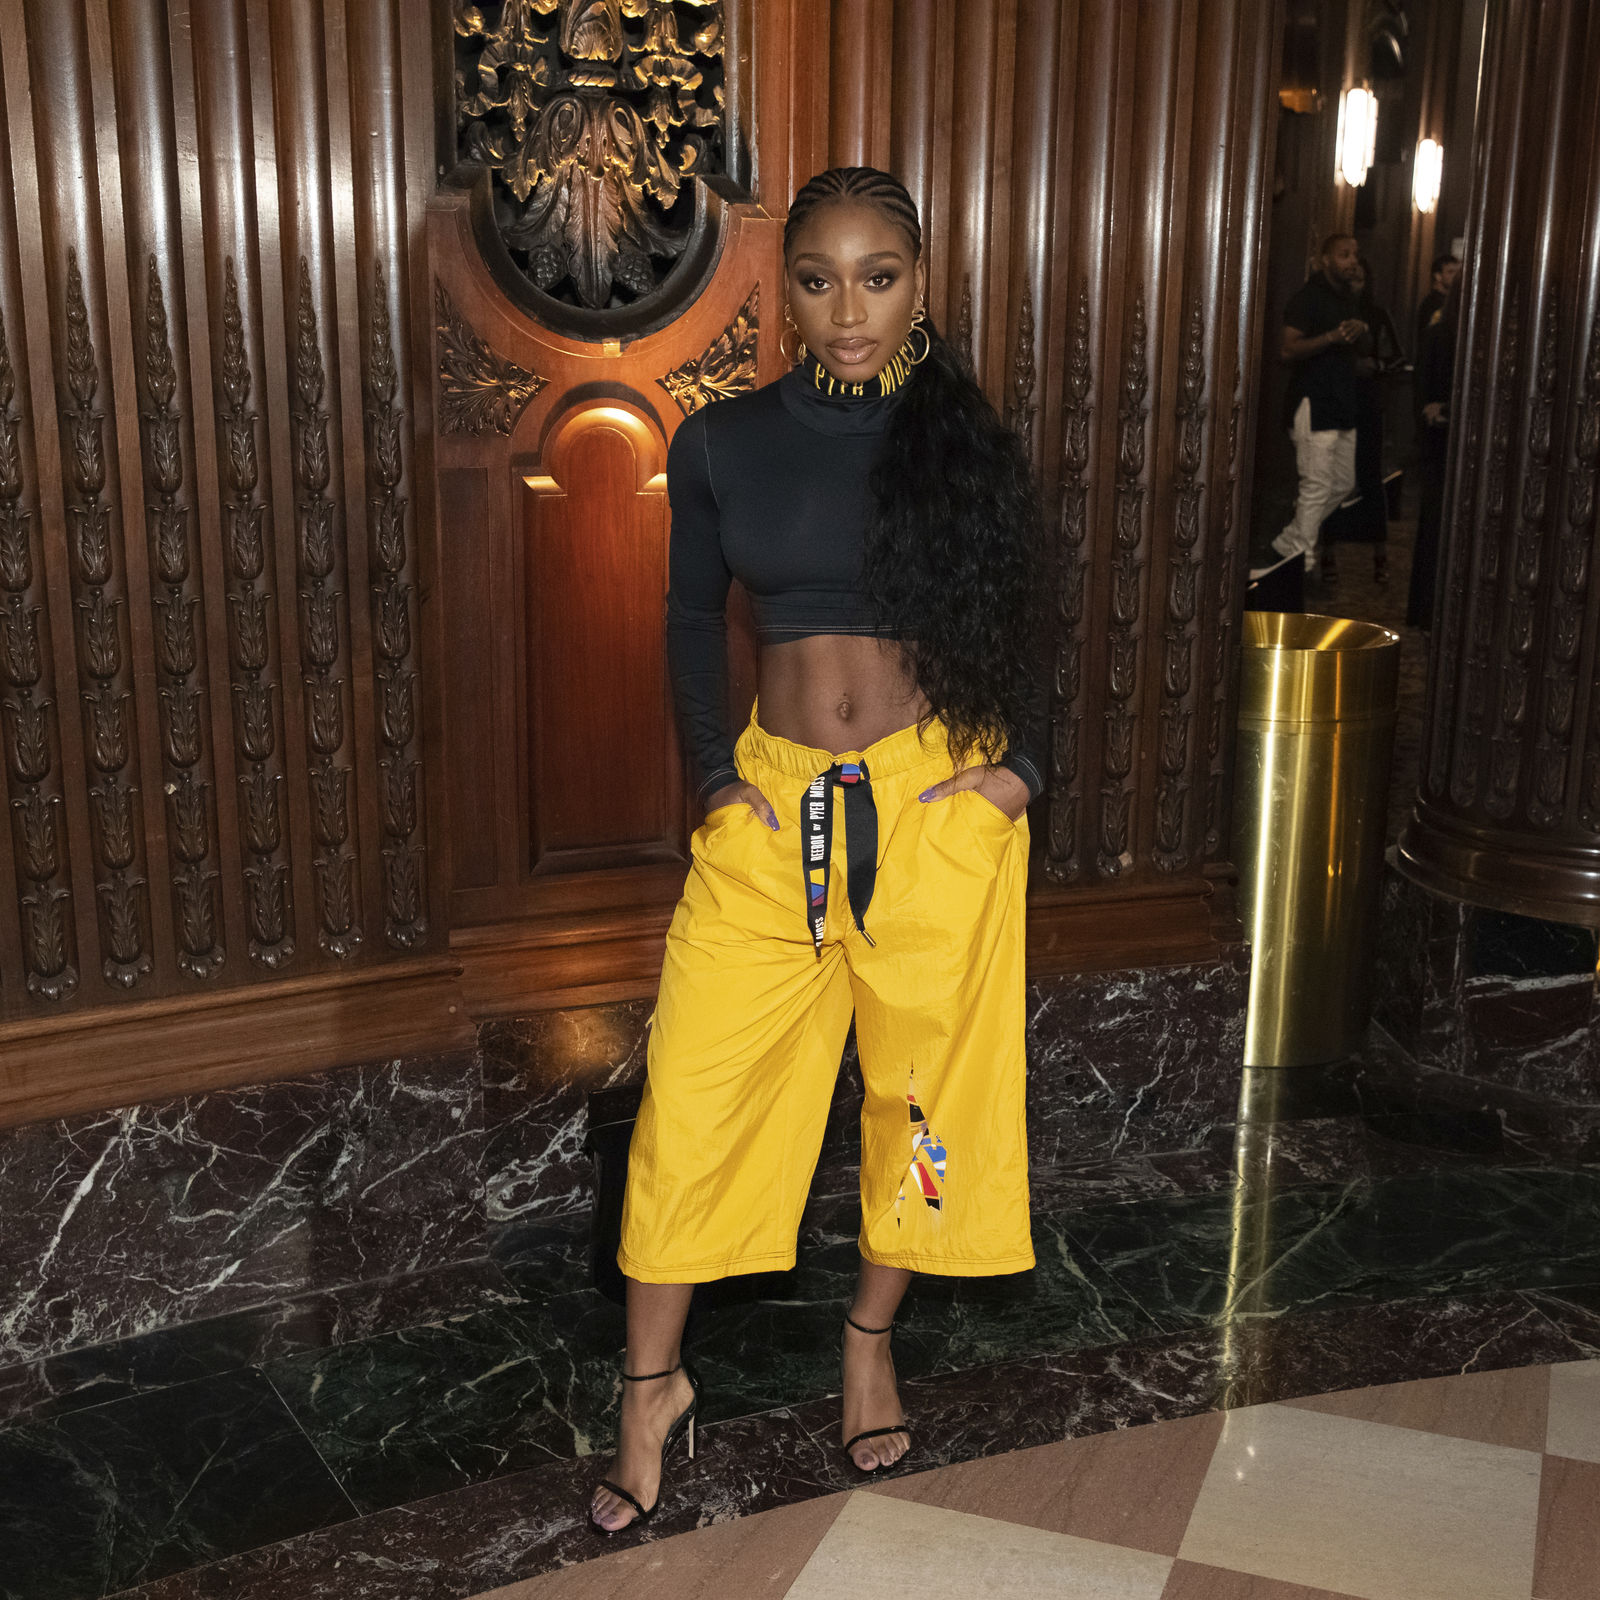 Singer Normani attends the Pyer Moss runway show during NYFW Spring/Summer 2020 on Sunday, Sept. 8, 2019, in Brooklyn, New York. (Photo by Brent N. Clarke/Invision/AP)